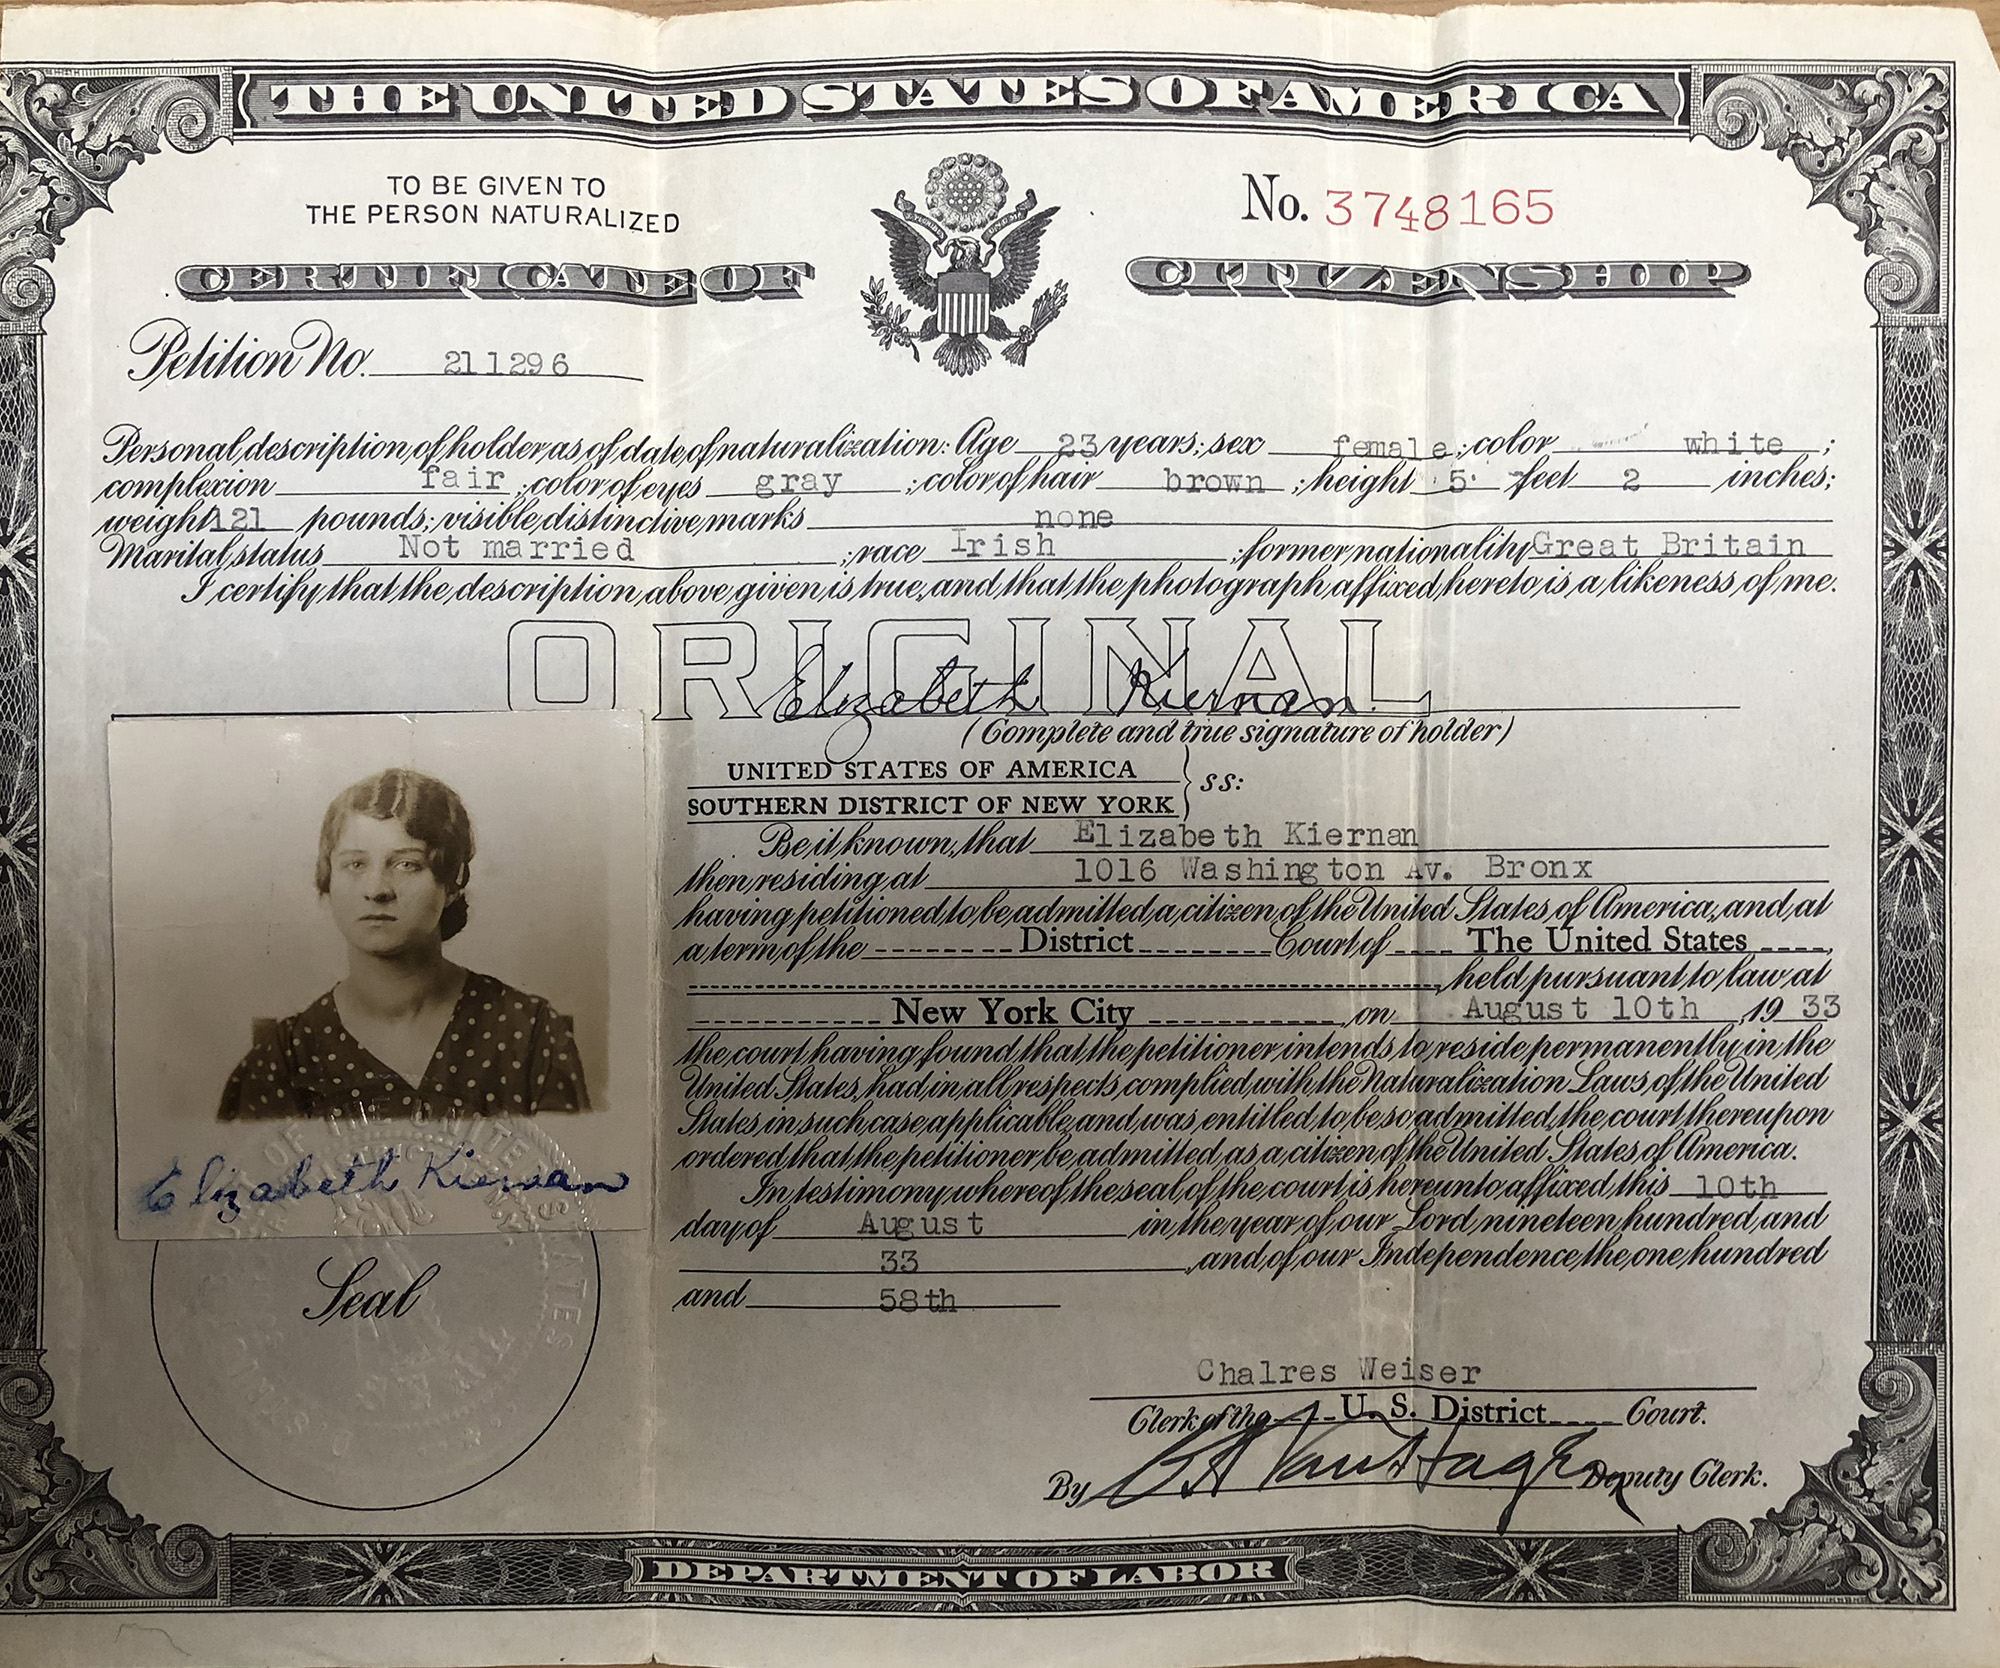 Elizabeth Kiernan Brown's Certificate of Citizenship, issued August 10, 1933. (Click on image for a bigger version.)